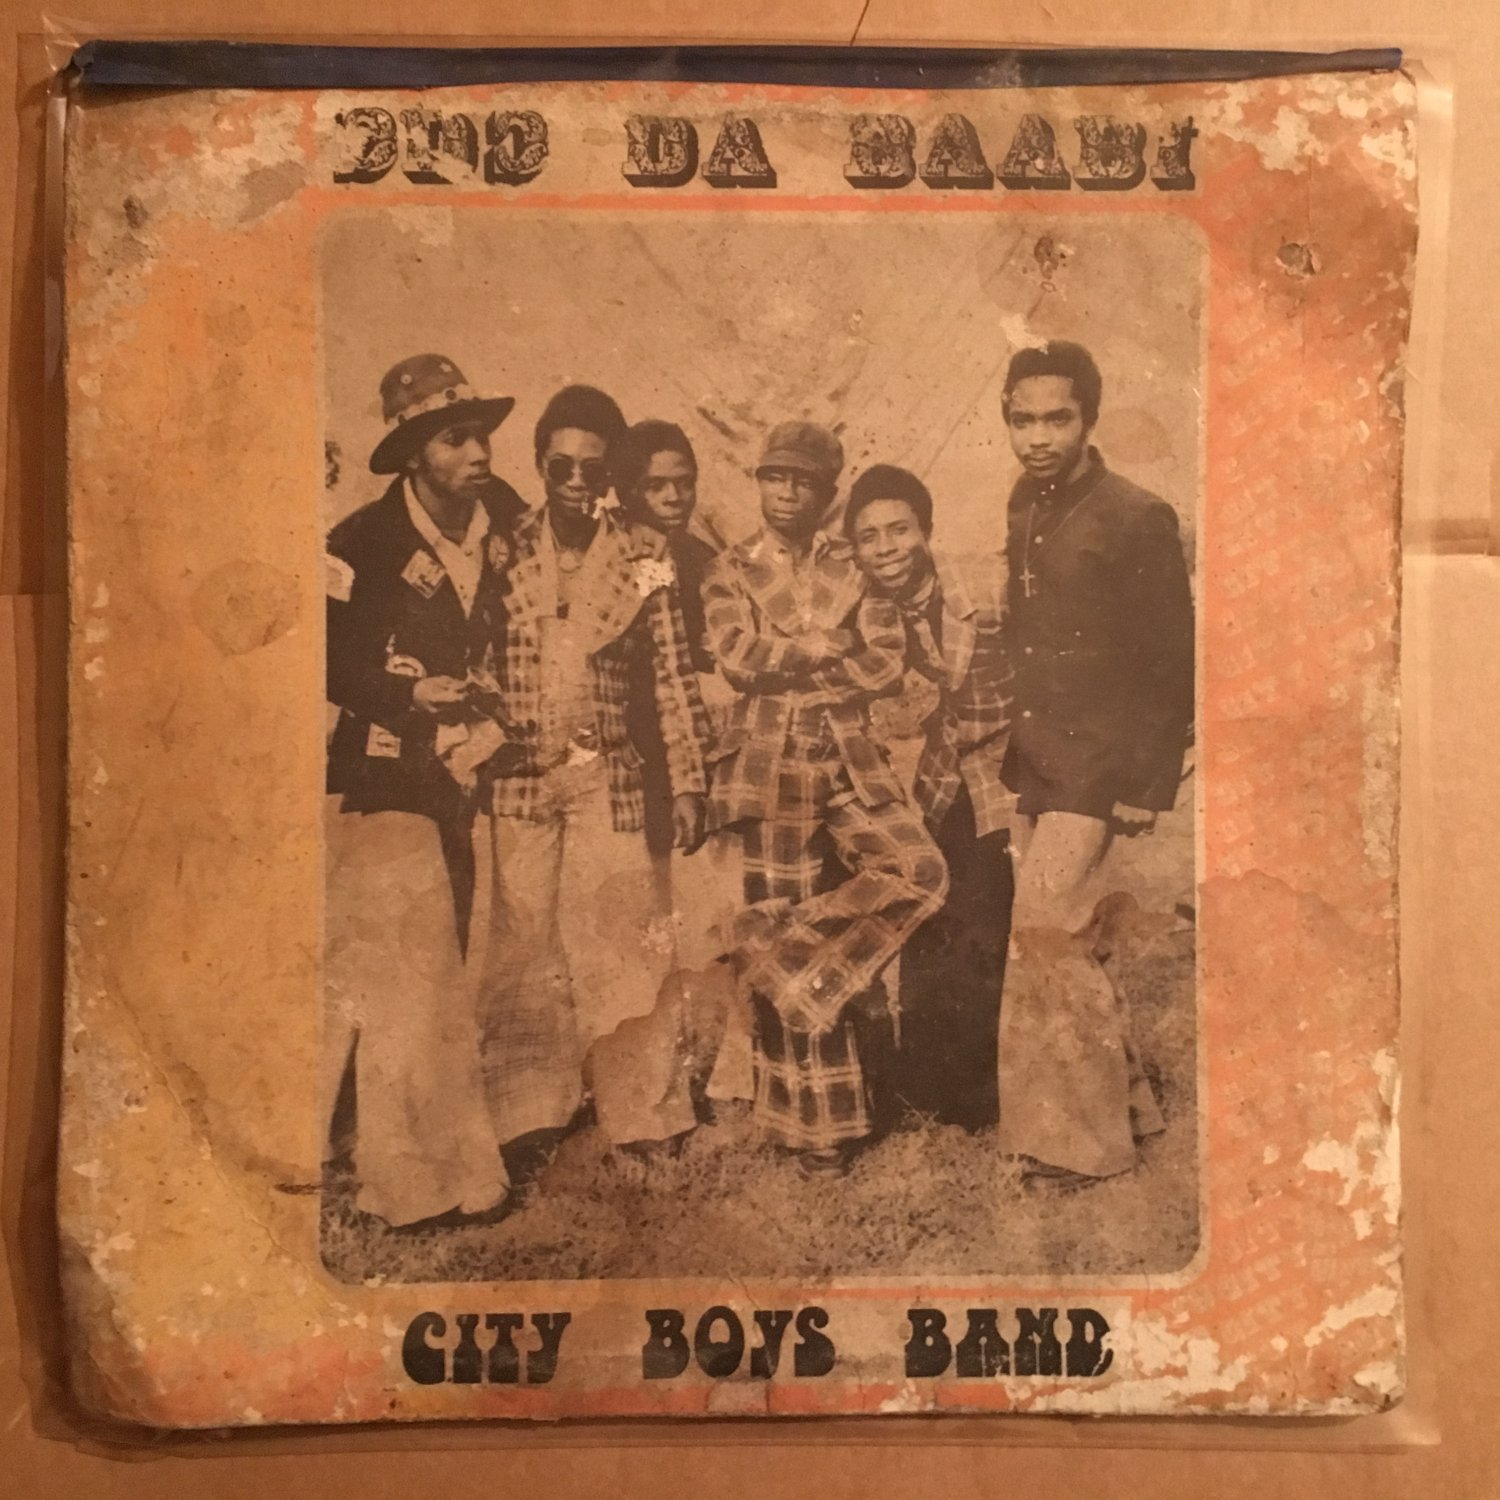 CITY BOYS BAND LP odo da baabi AFRO BEAT HIGHLIFE GHANA mp3 LISTEN